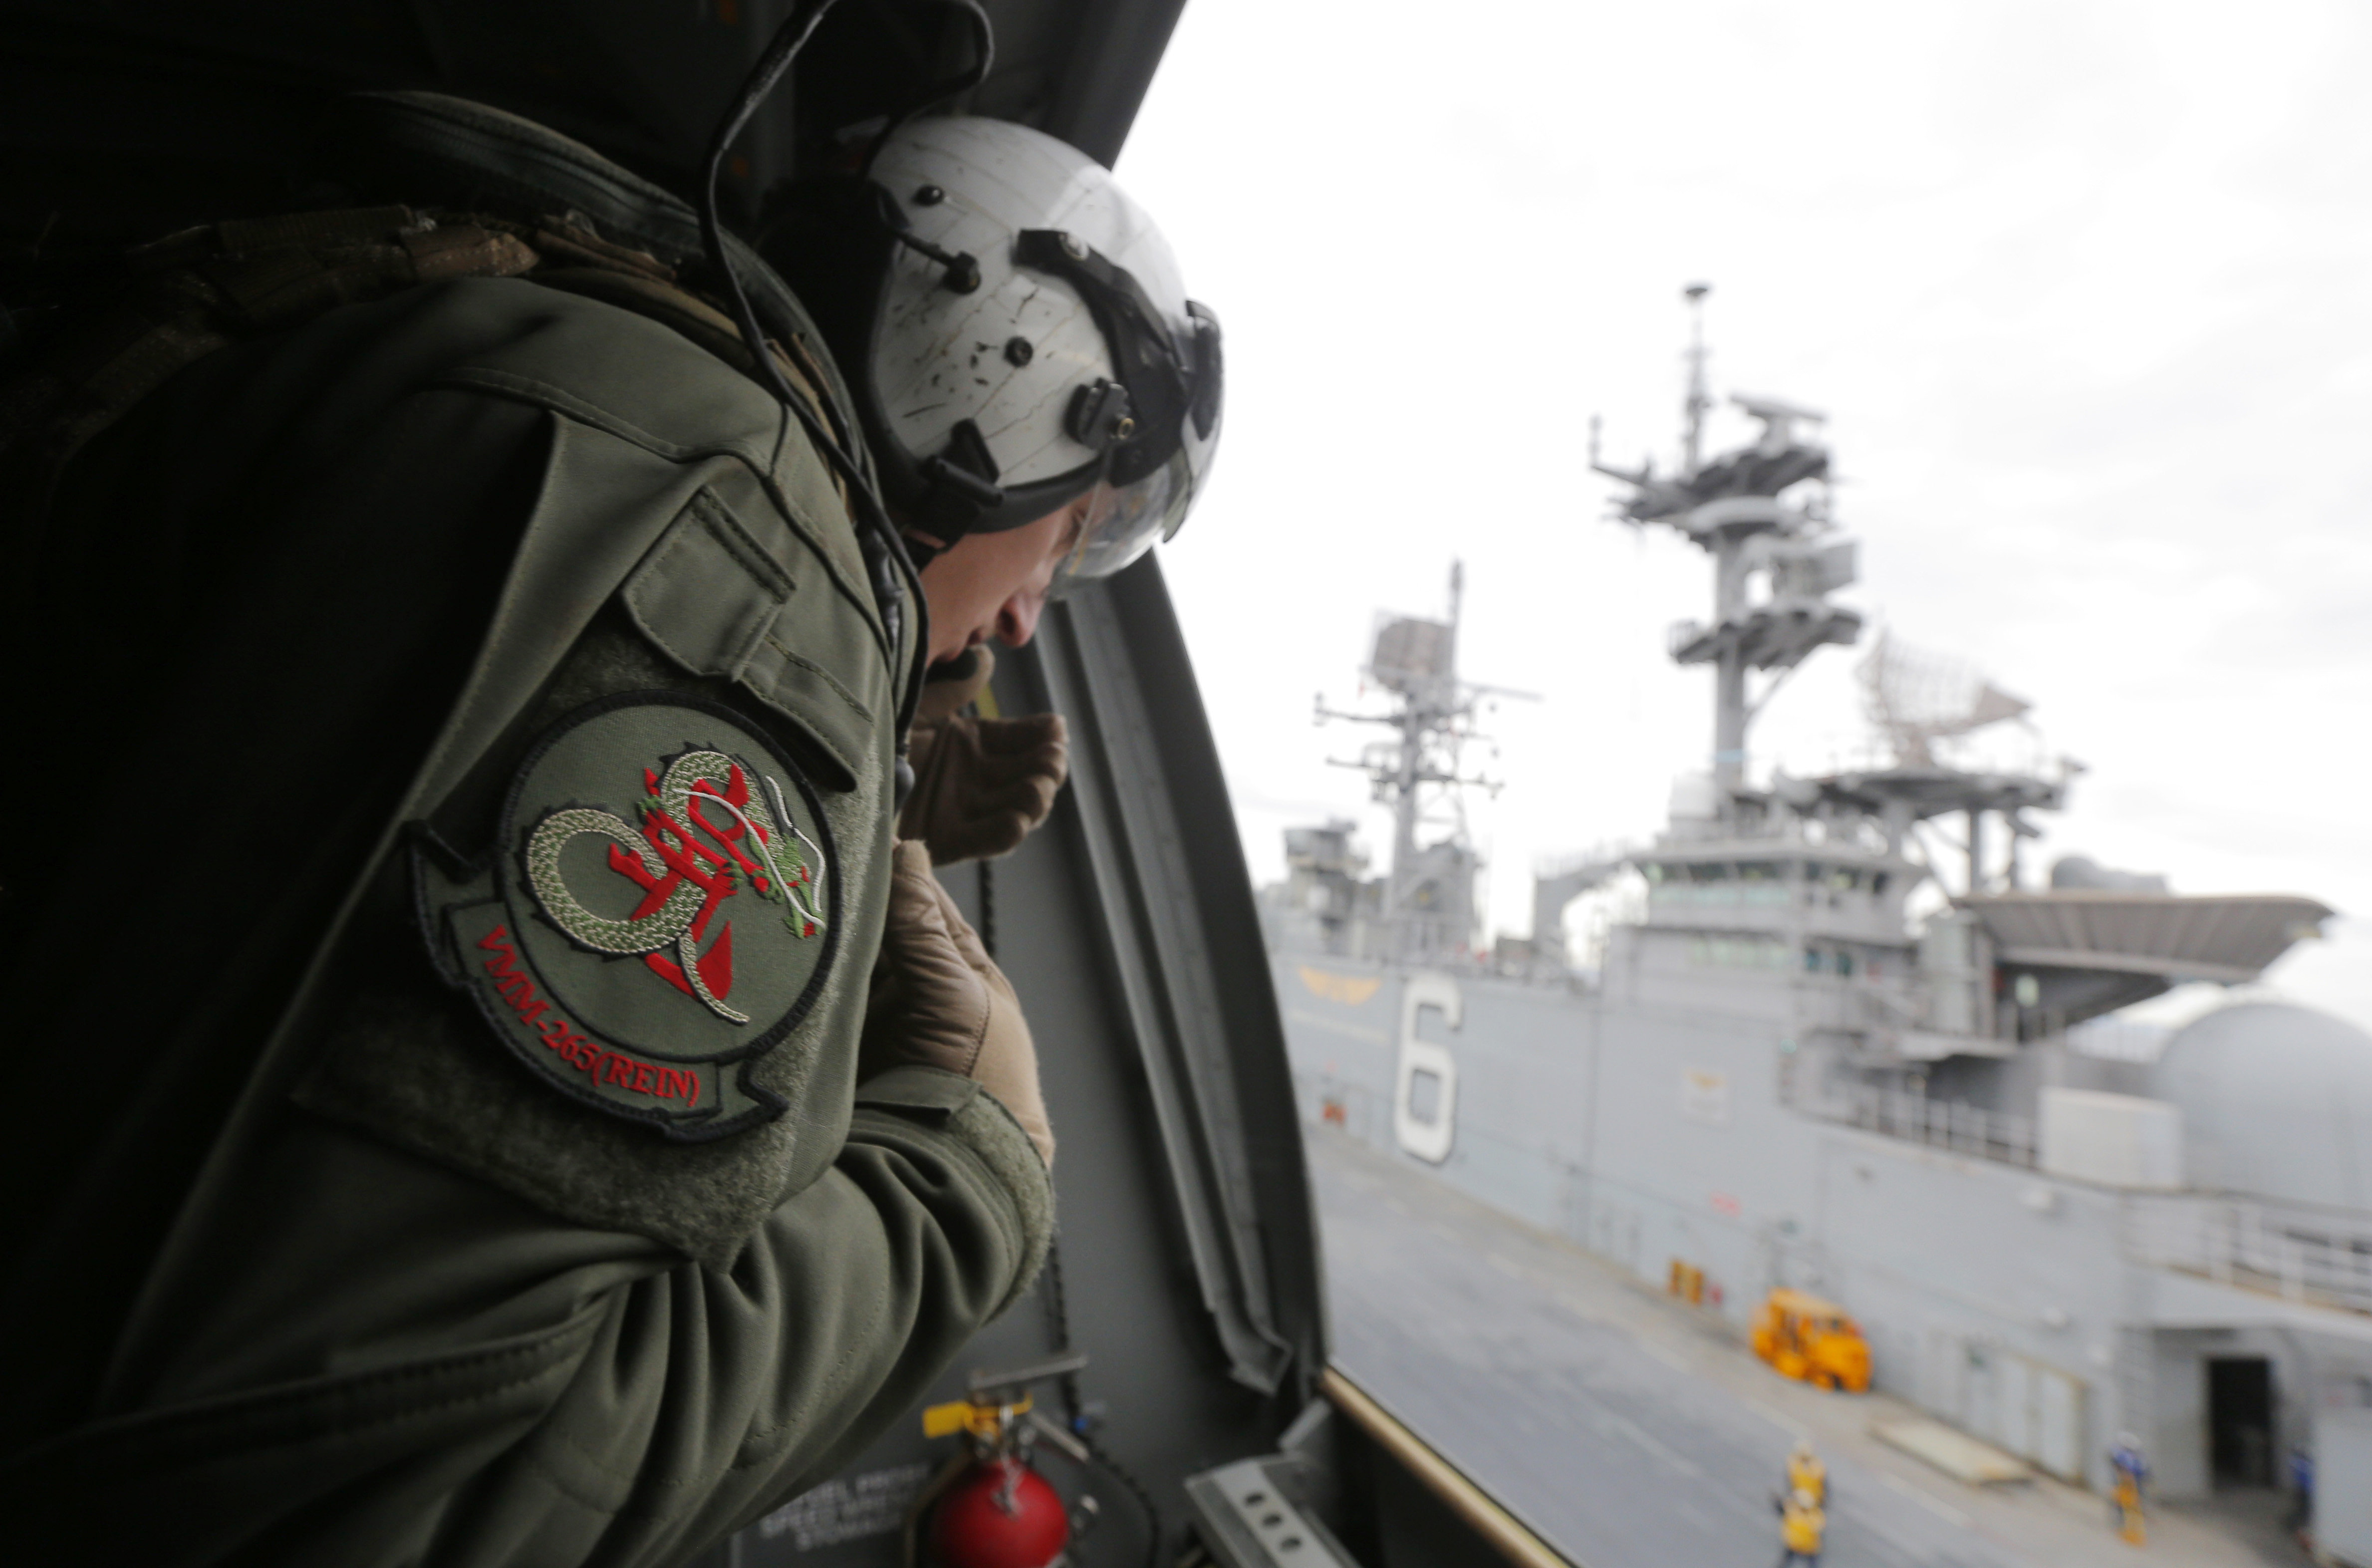 A crewman aboard a U.S. Marine MV-22B Osprey aircraft looks out as it lifts off the deck of the USS Bonhomme Richard amphibious assault ship off the coast of Sydney, Australia, Thursday, June 29, 2017 after a ceremony on board the ship marking the start of Talisman Saber 2017, a biennial joint military exercise between the United States and Australia